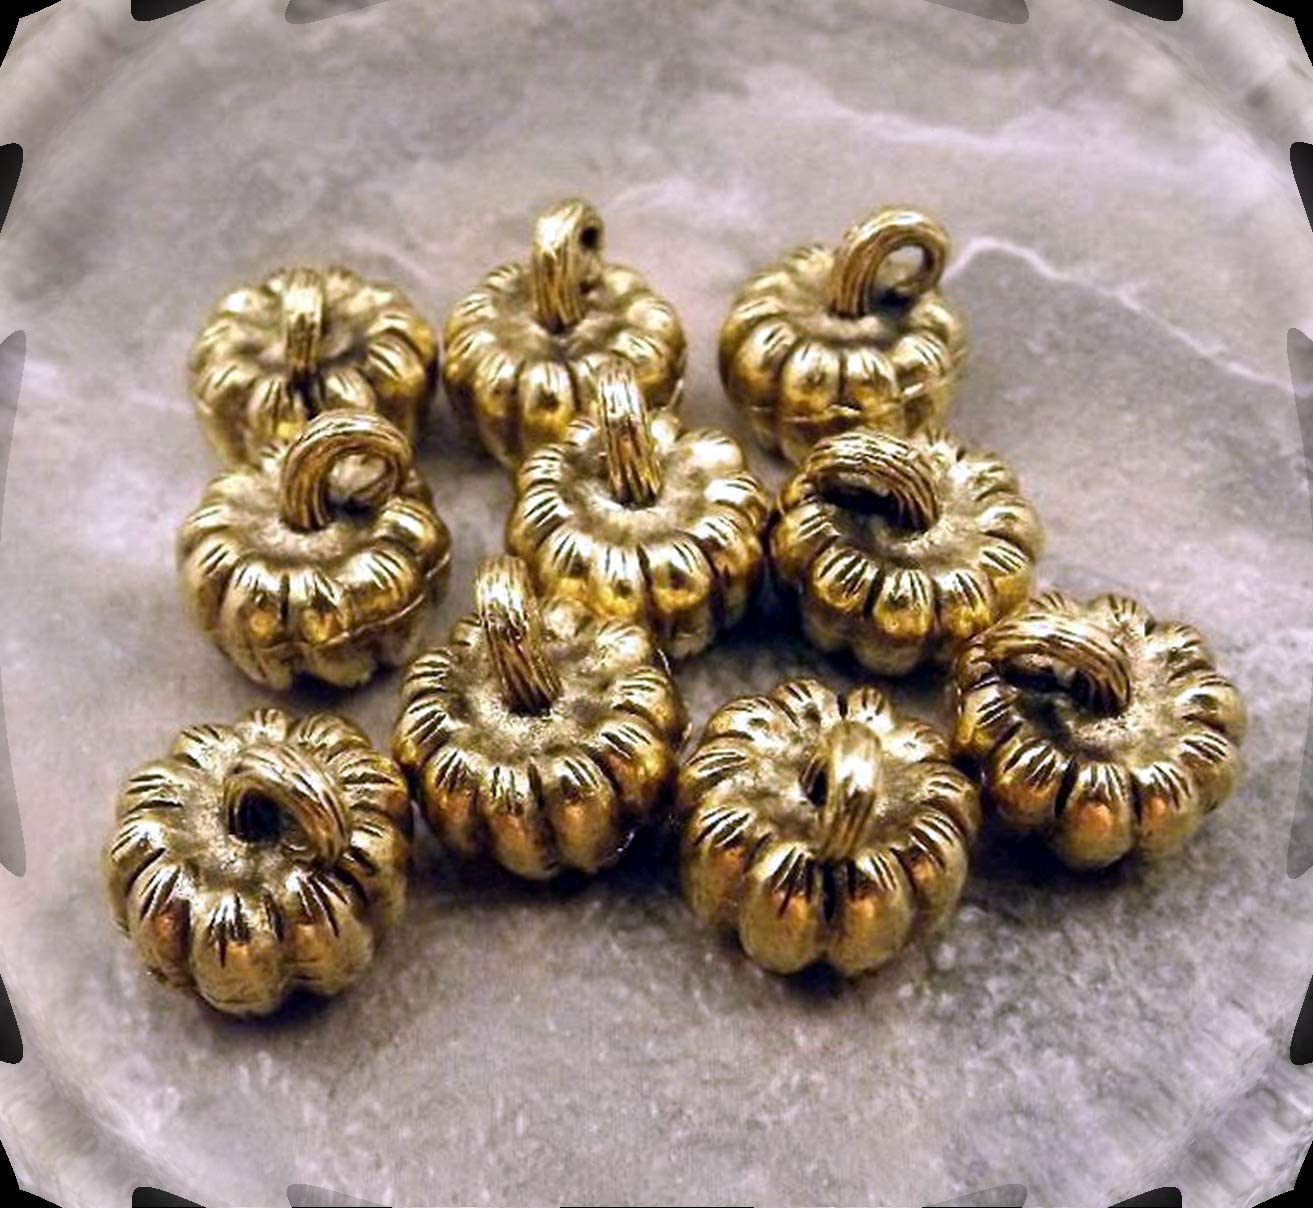 Lot of 10 Pewter 3D Gold Tone Pumpkin Charms Adorable Charms and More for Your own Designs by CharmingStuffS